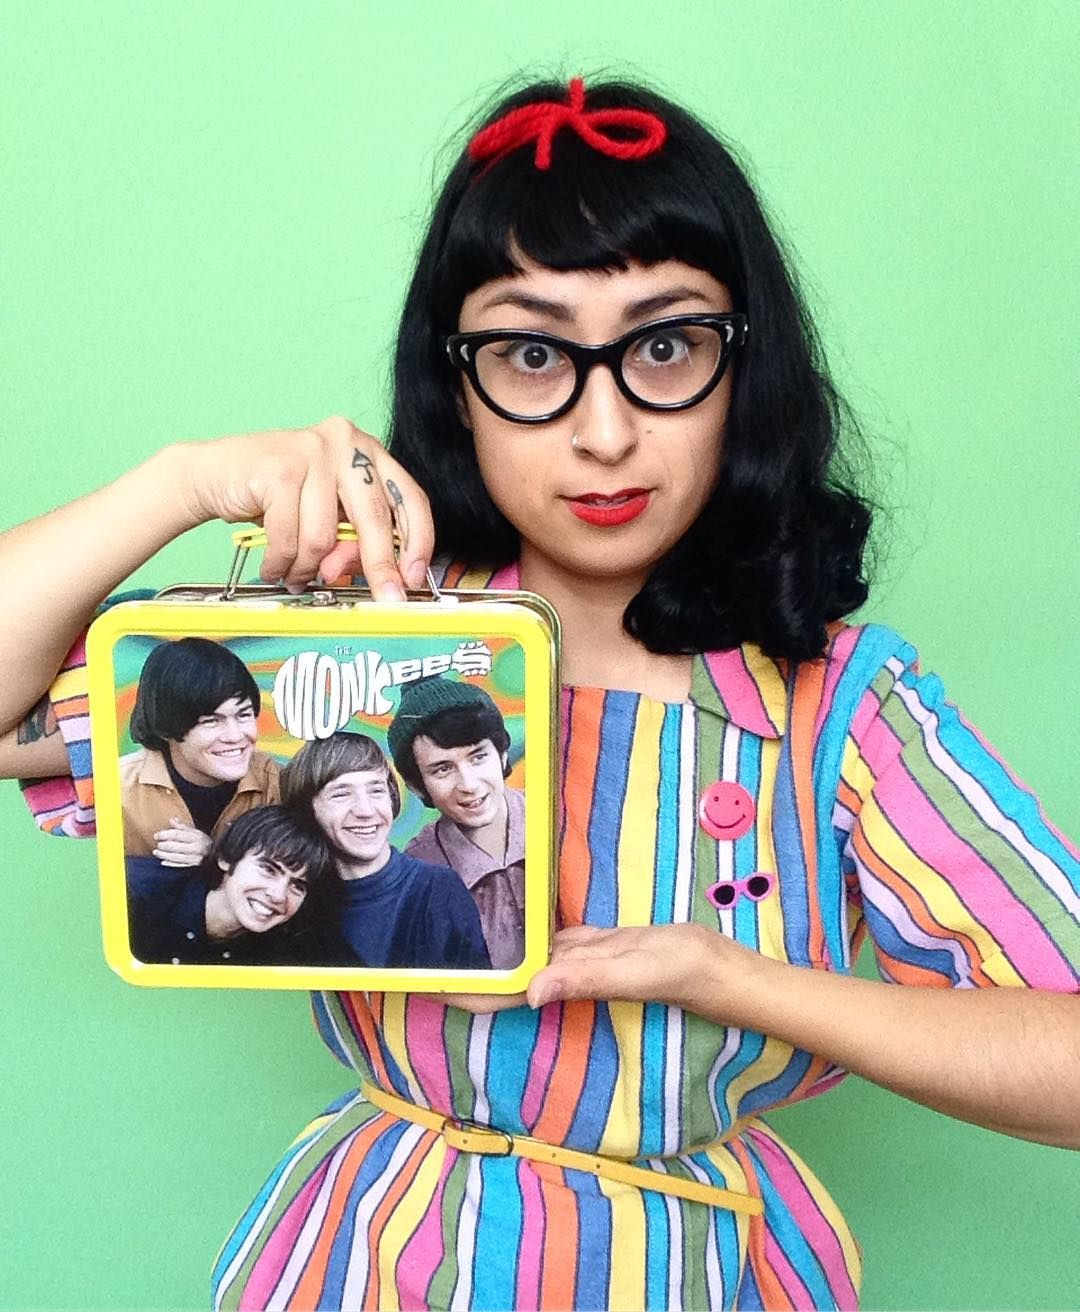 I don't think I have ever squealed as loud as I did today when I found this Monkees lunch box. #thesmallvictories